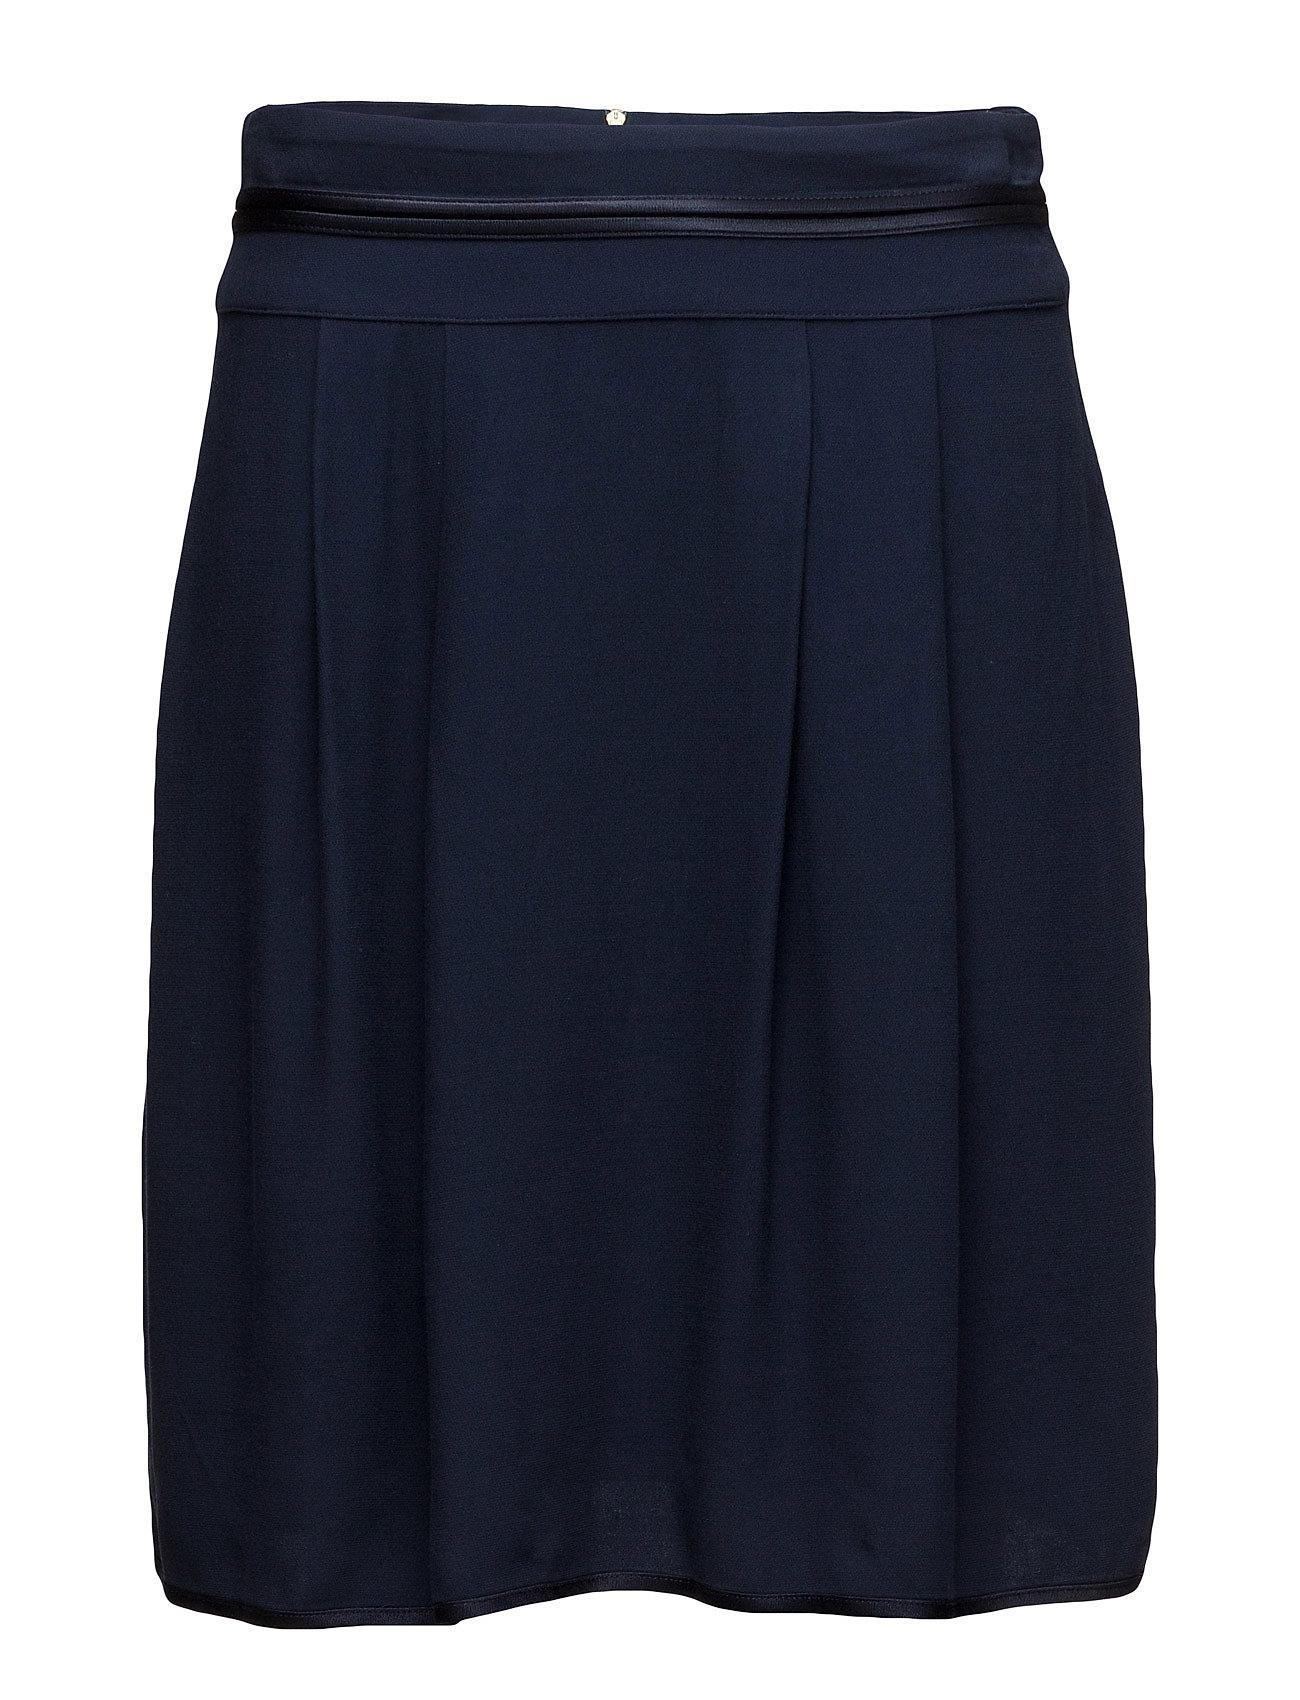 Esprit Collection Skirts Light Woven 15382367